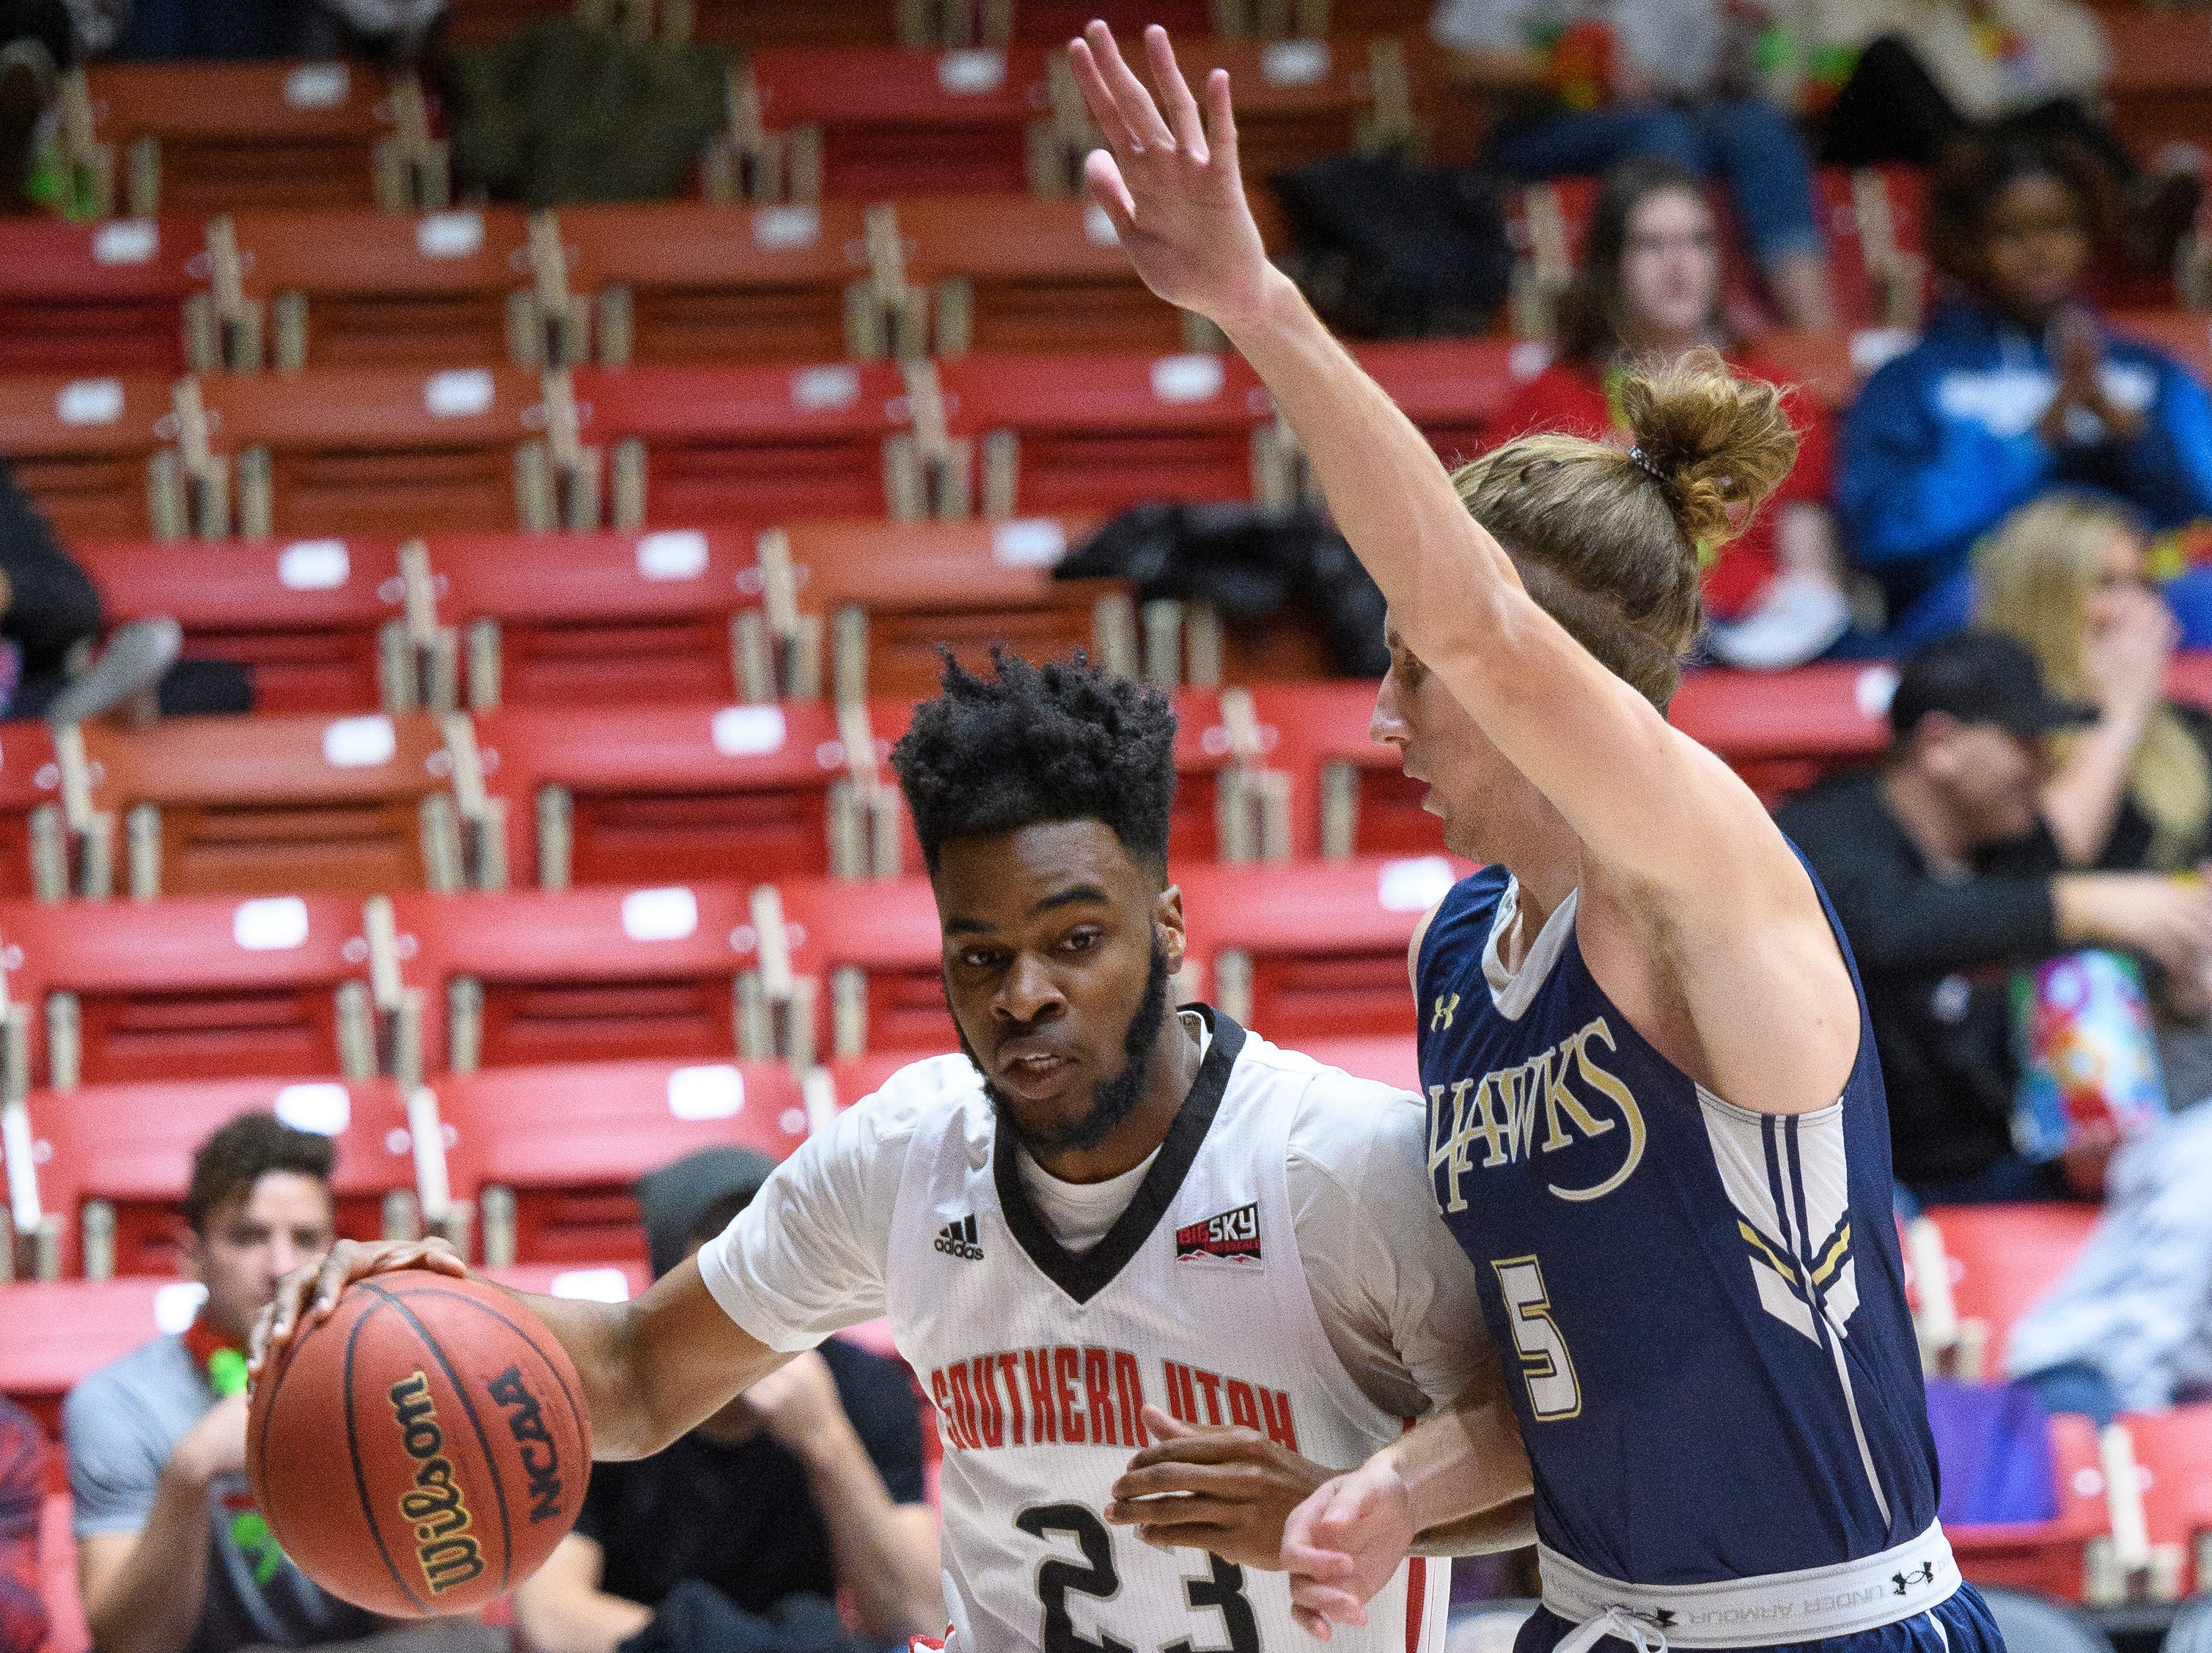 Southern Utah University junior Cameron Oluyitan (23) drives the ball into the key against San Diego Christian at the America First Event Center Thursday, November 29, 2018.